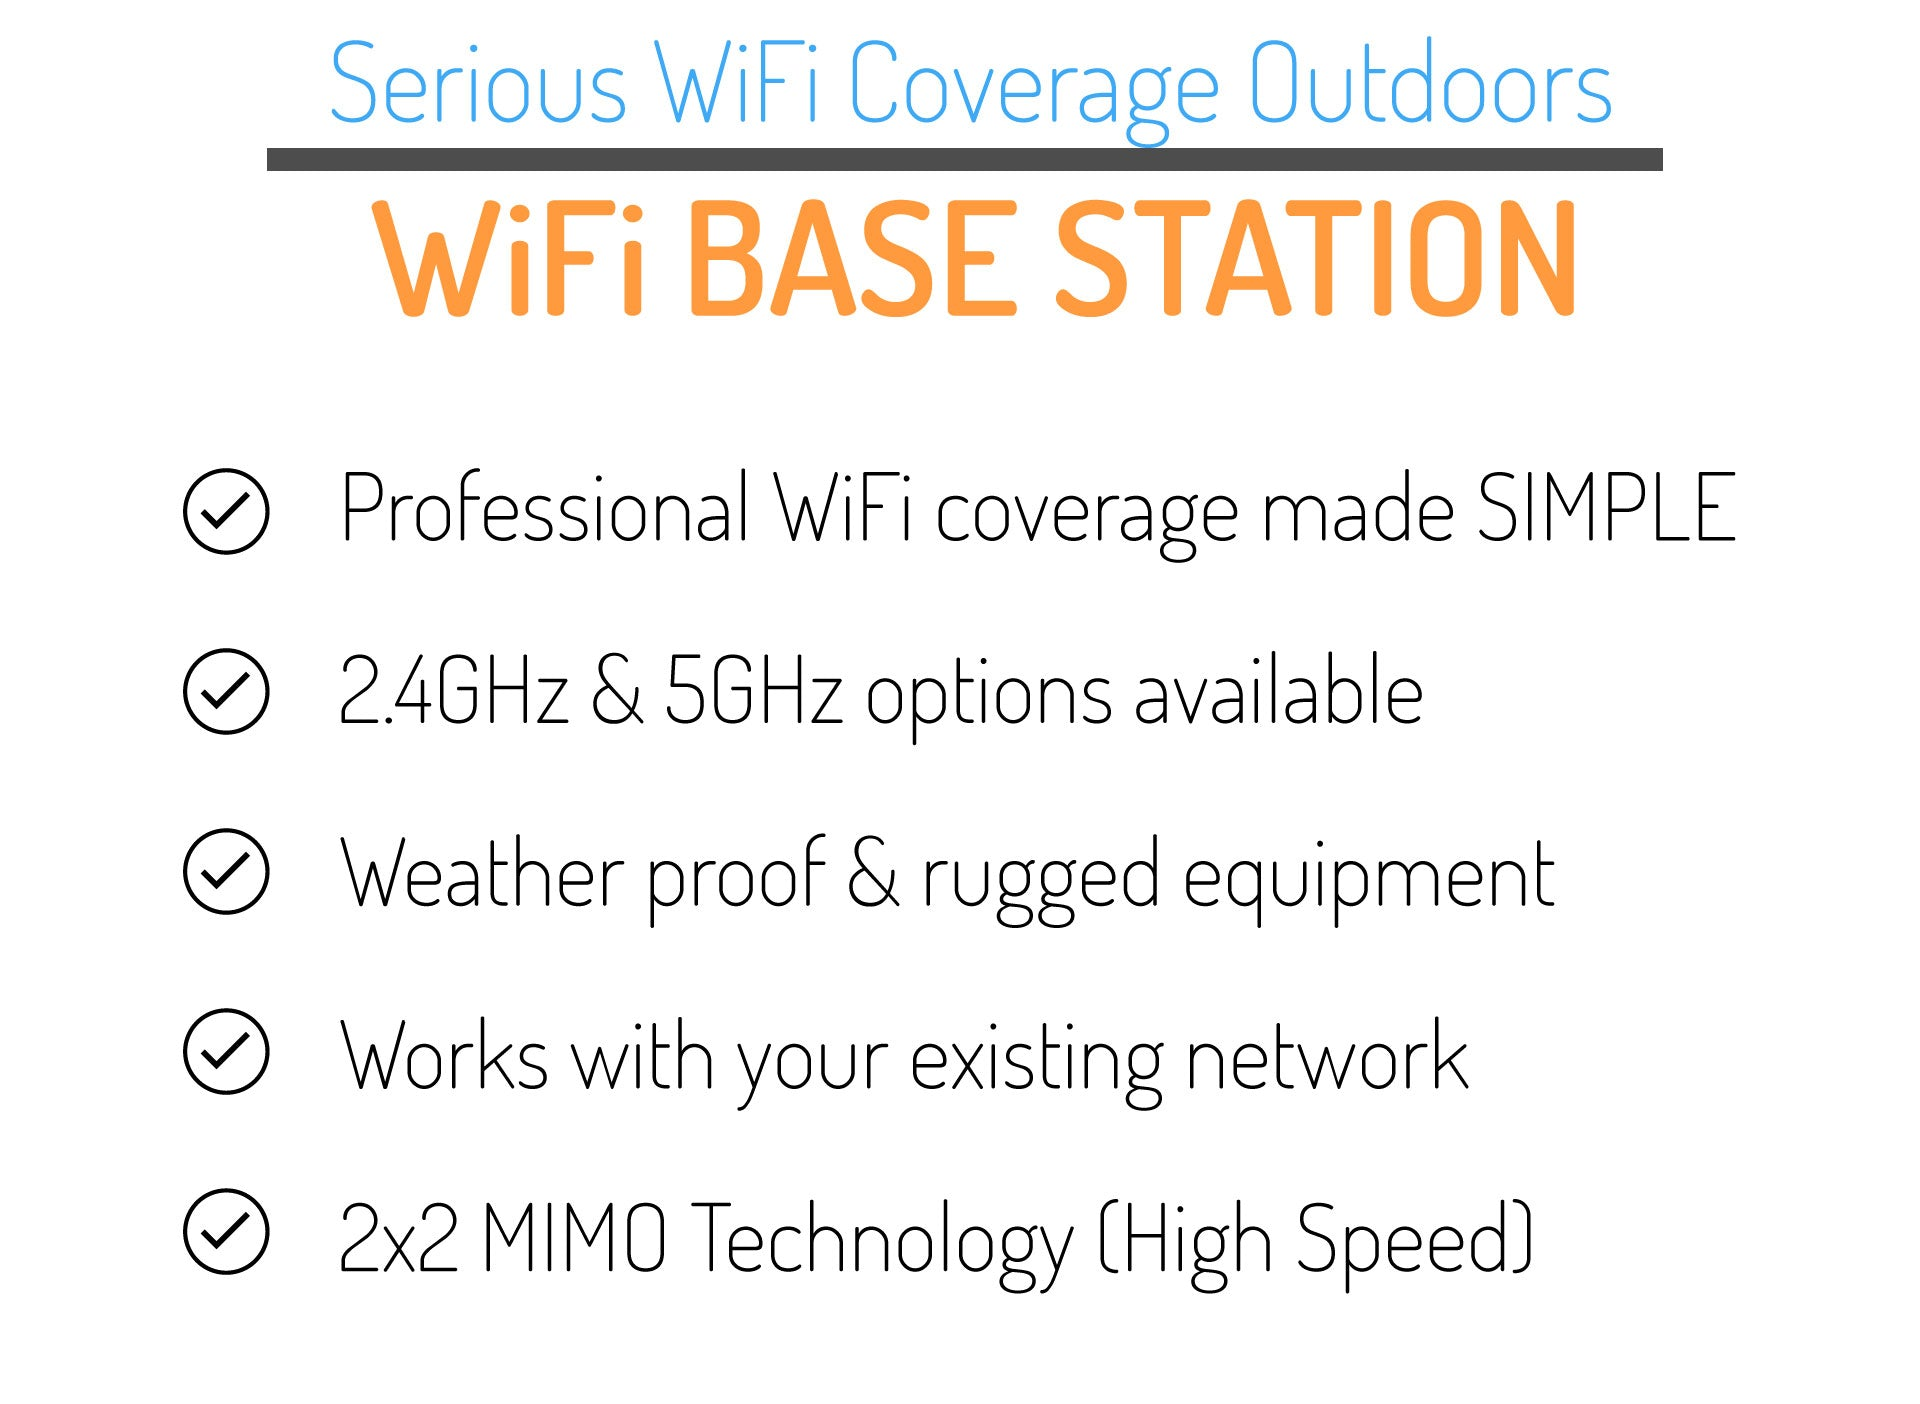 wifi base station features